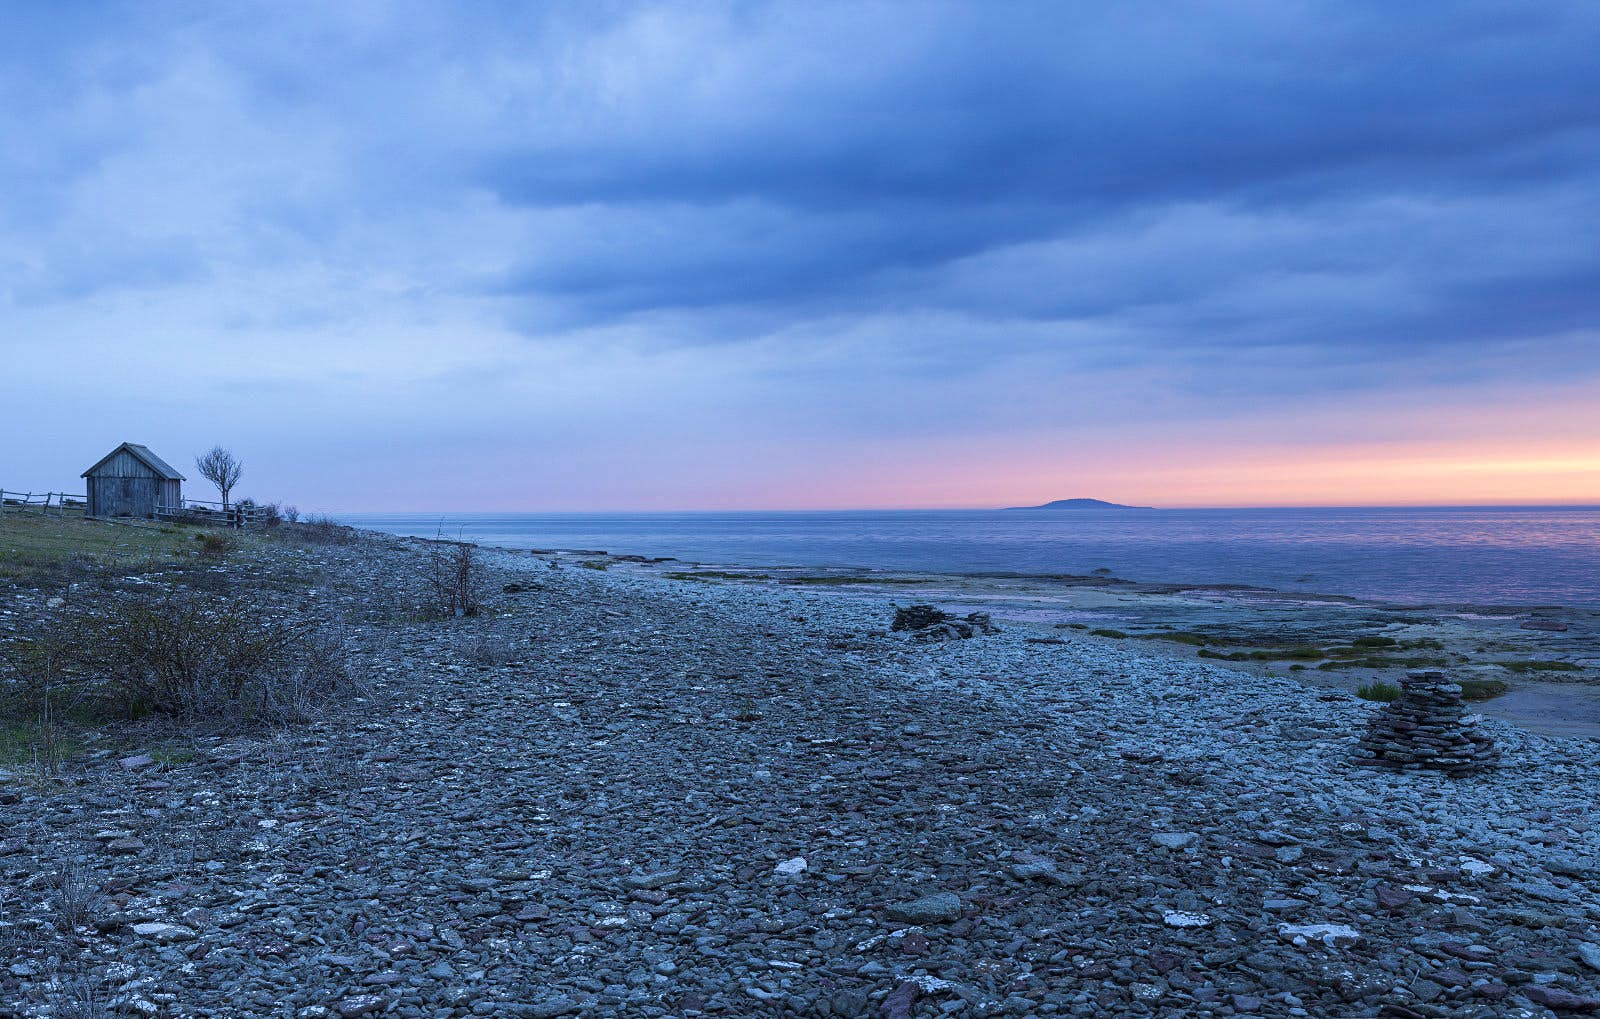 A stony beach after sunset with a sliver of pink in the sky. On the left background is an old timber hut with one bare tree next to it.